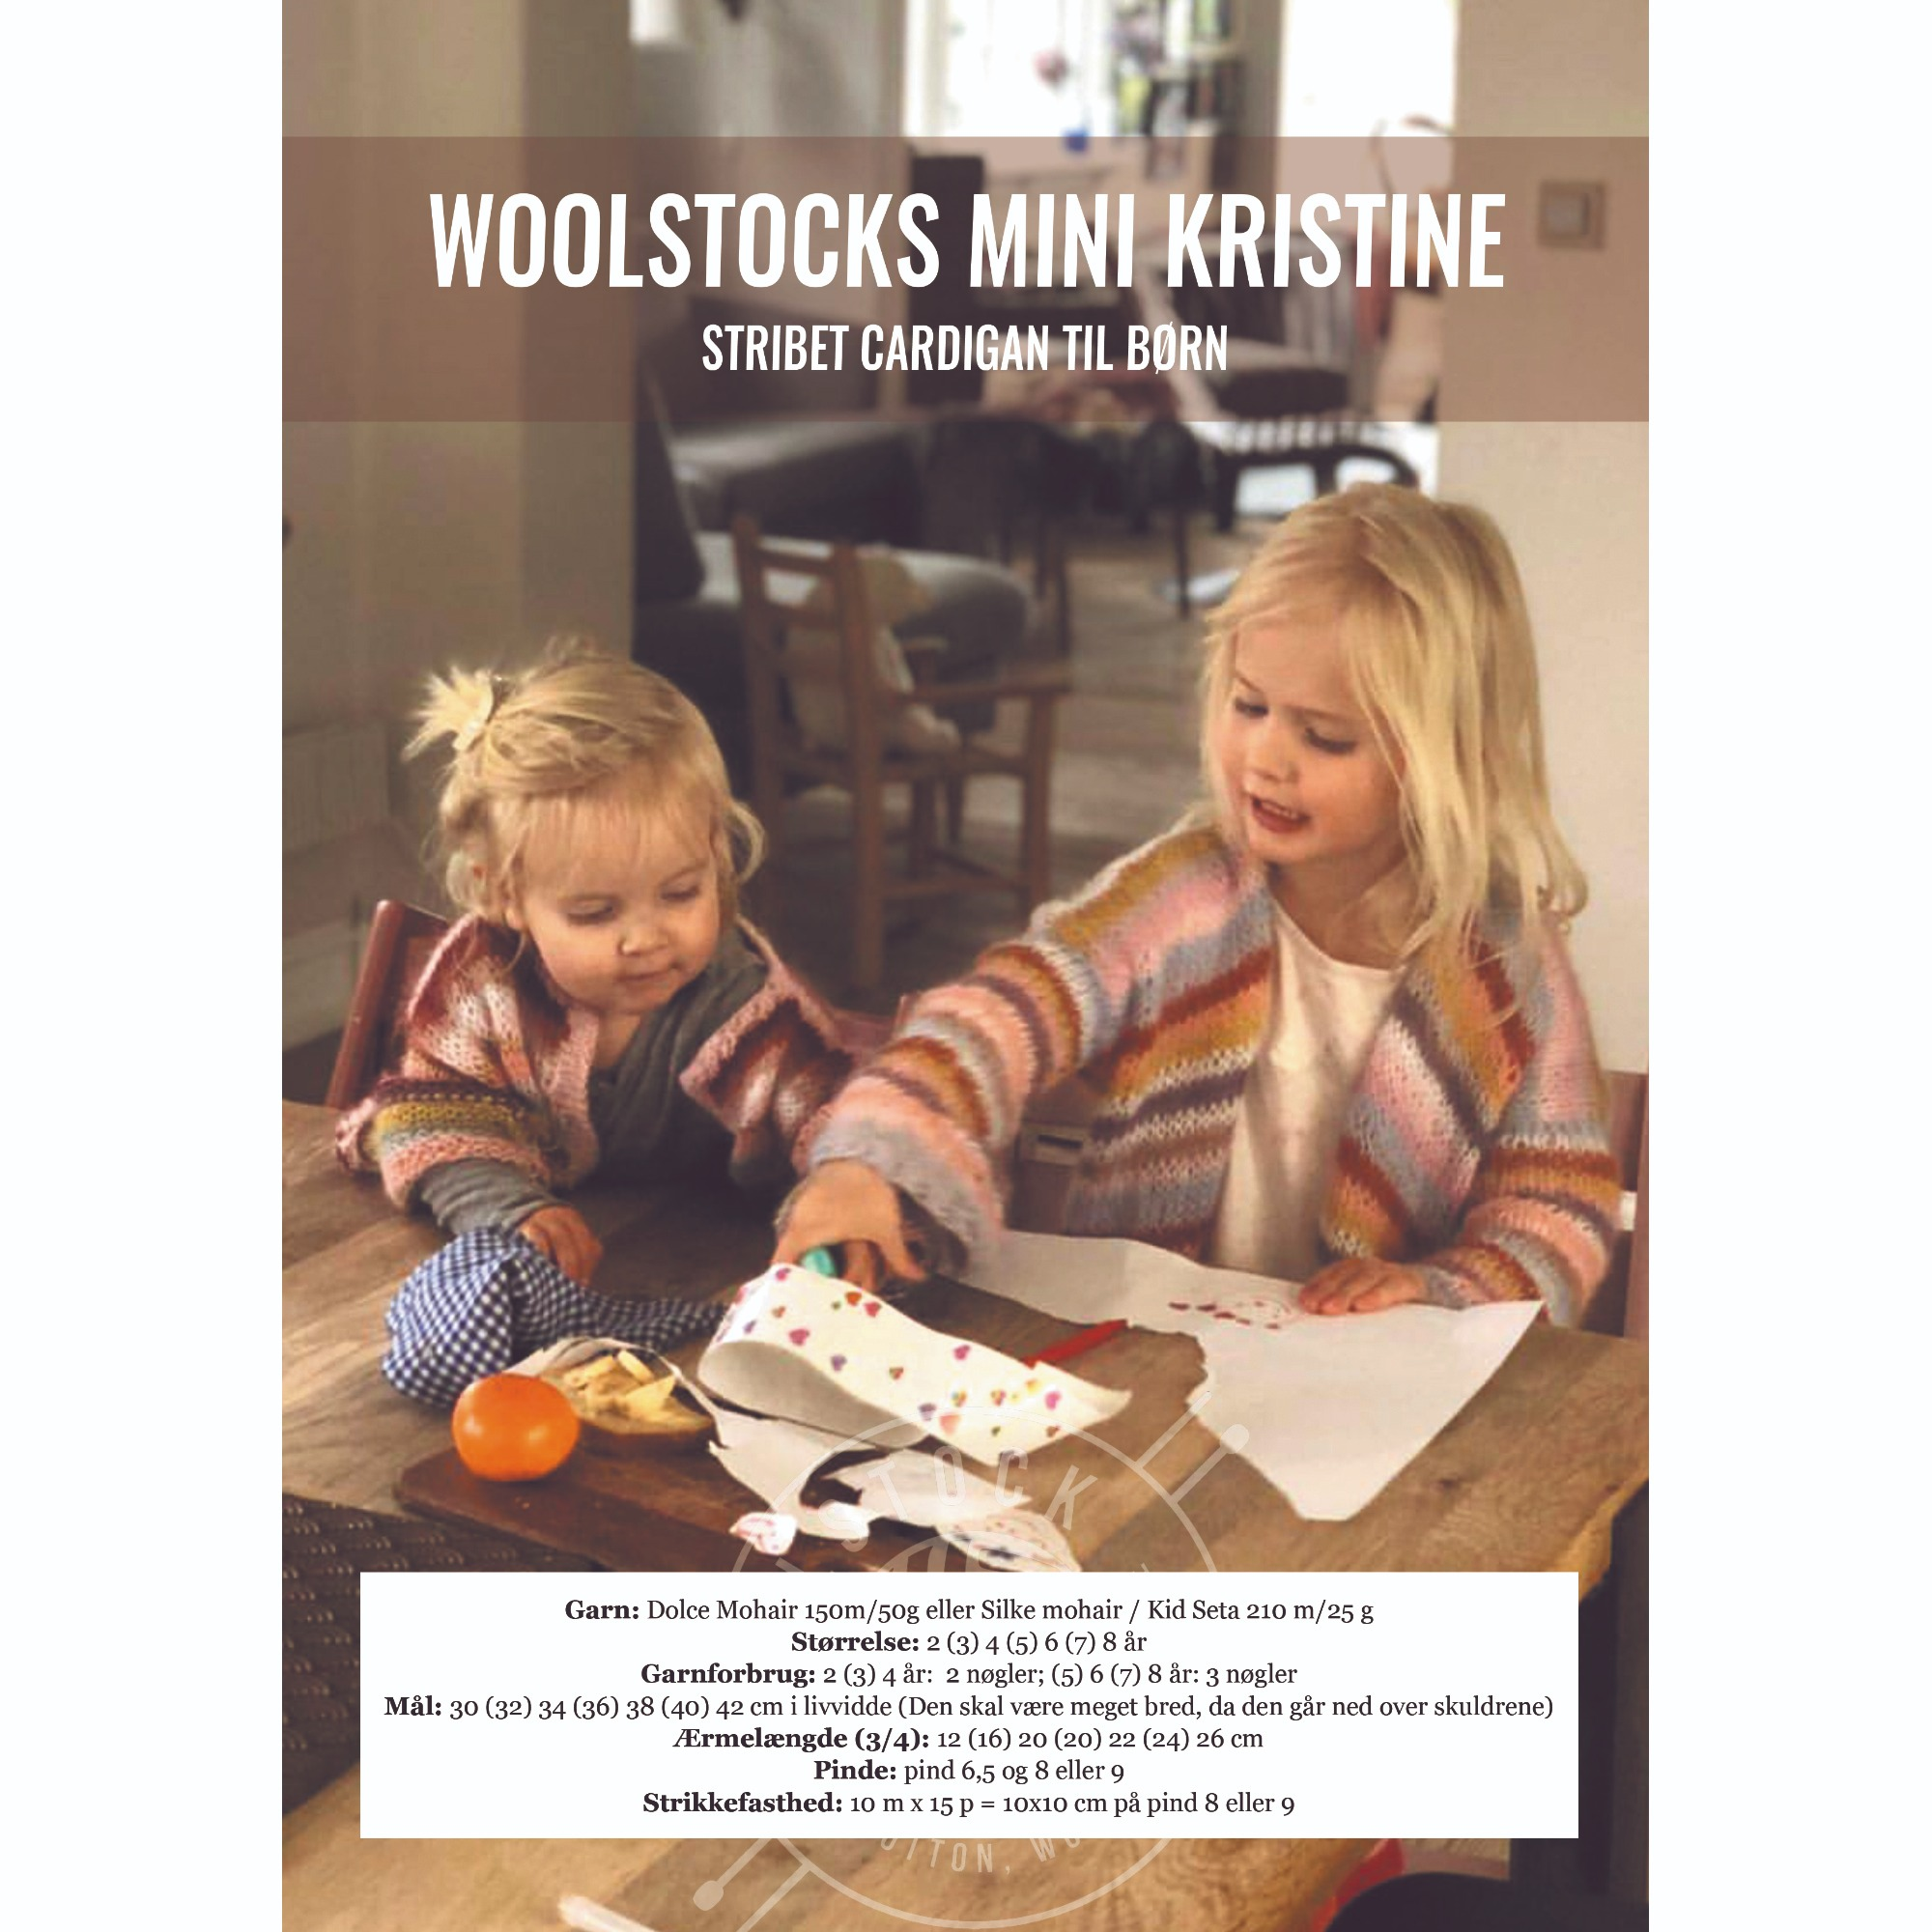 Woolstocks Mini Kristine